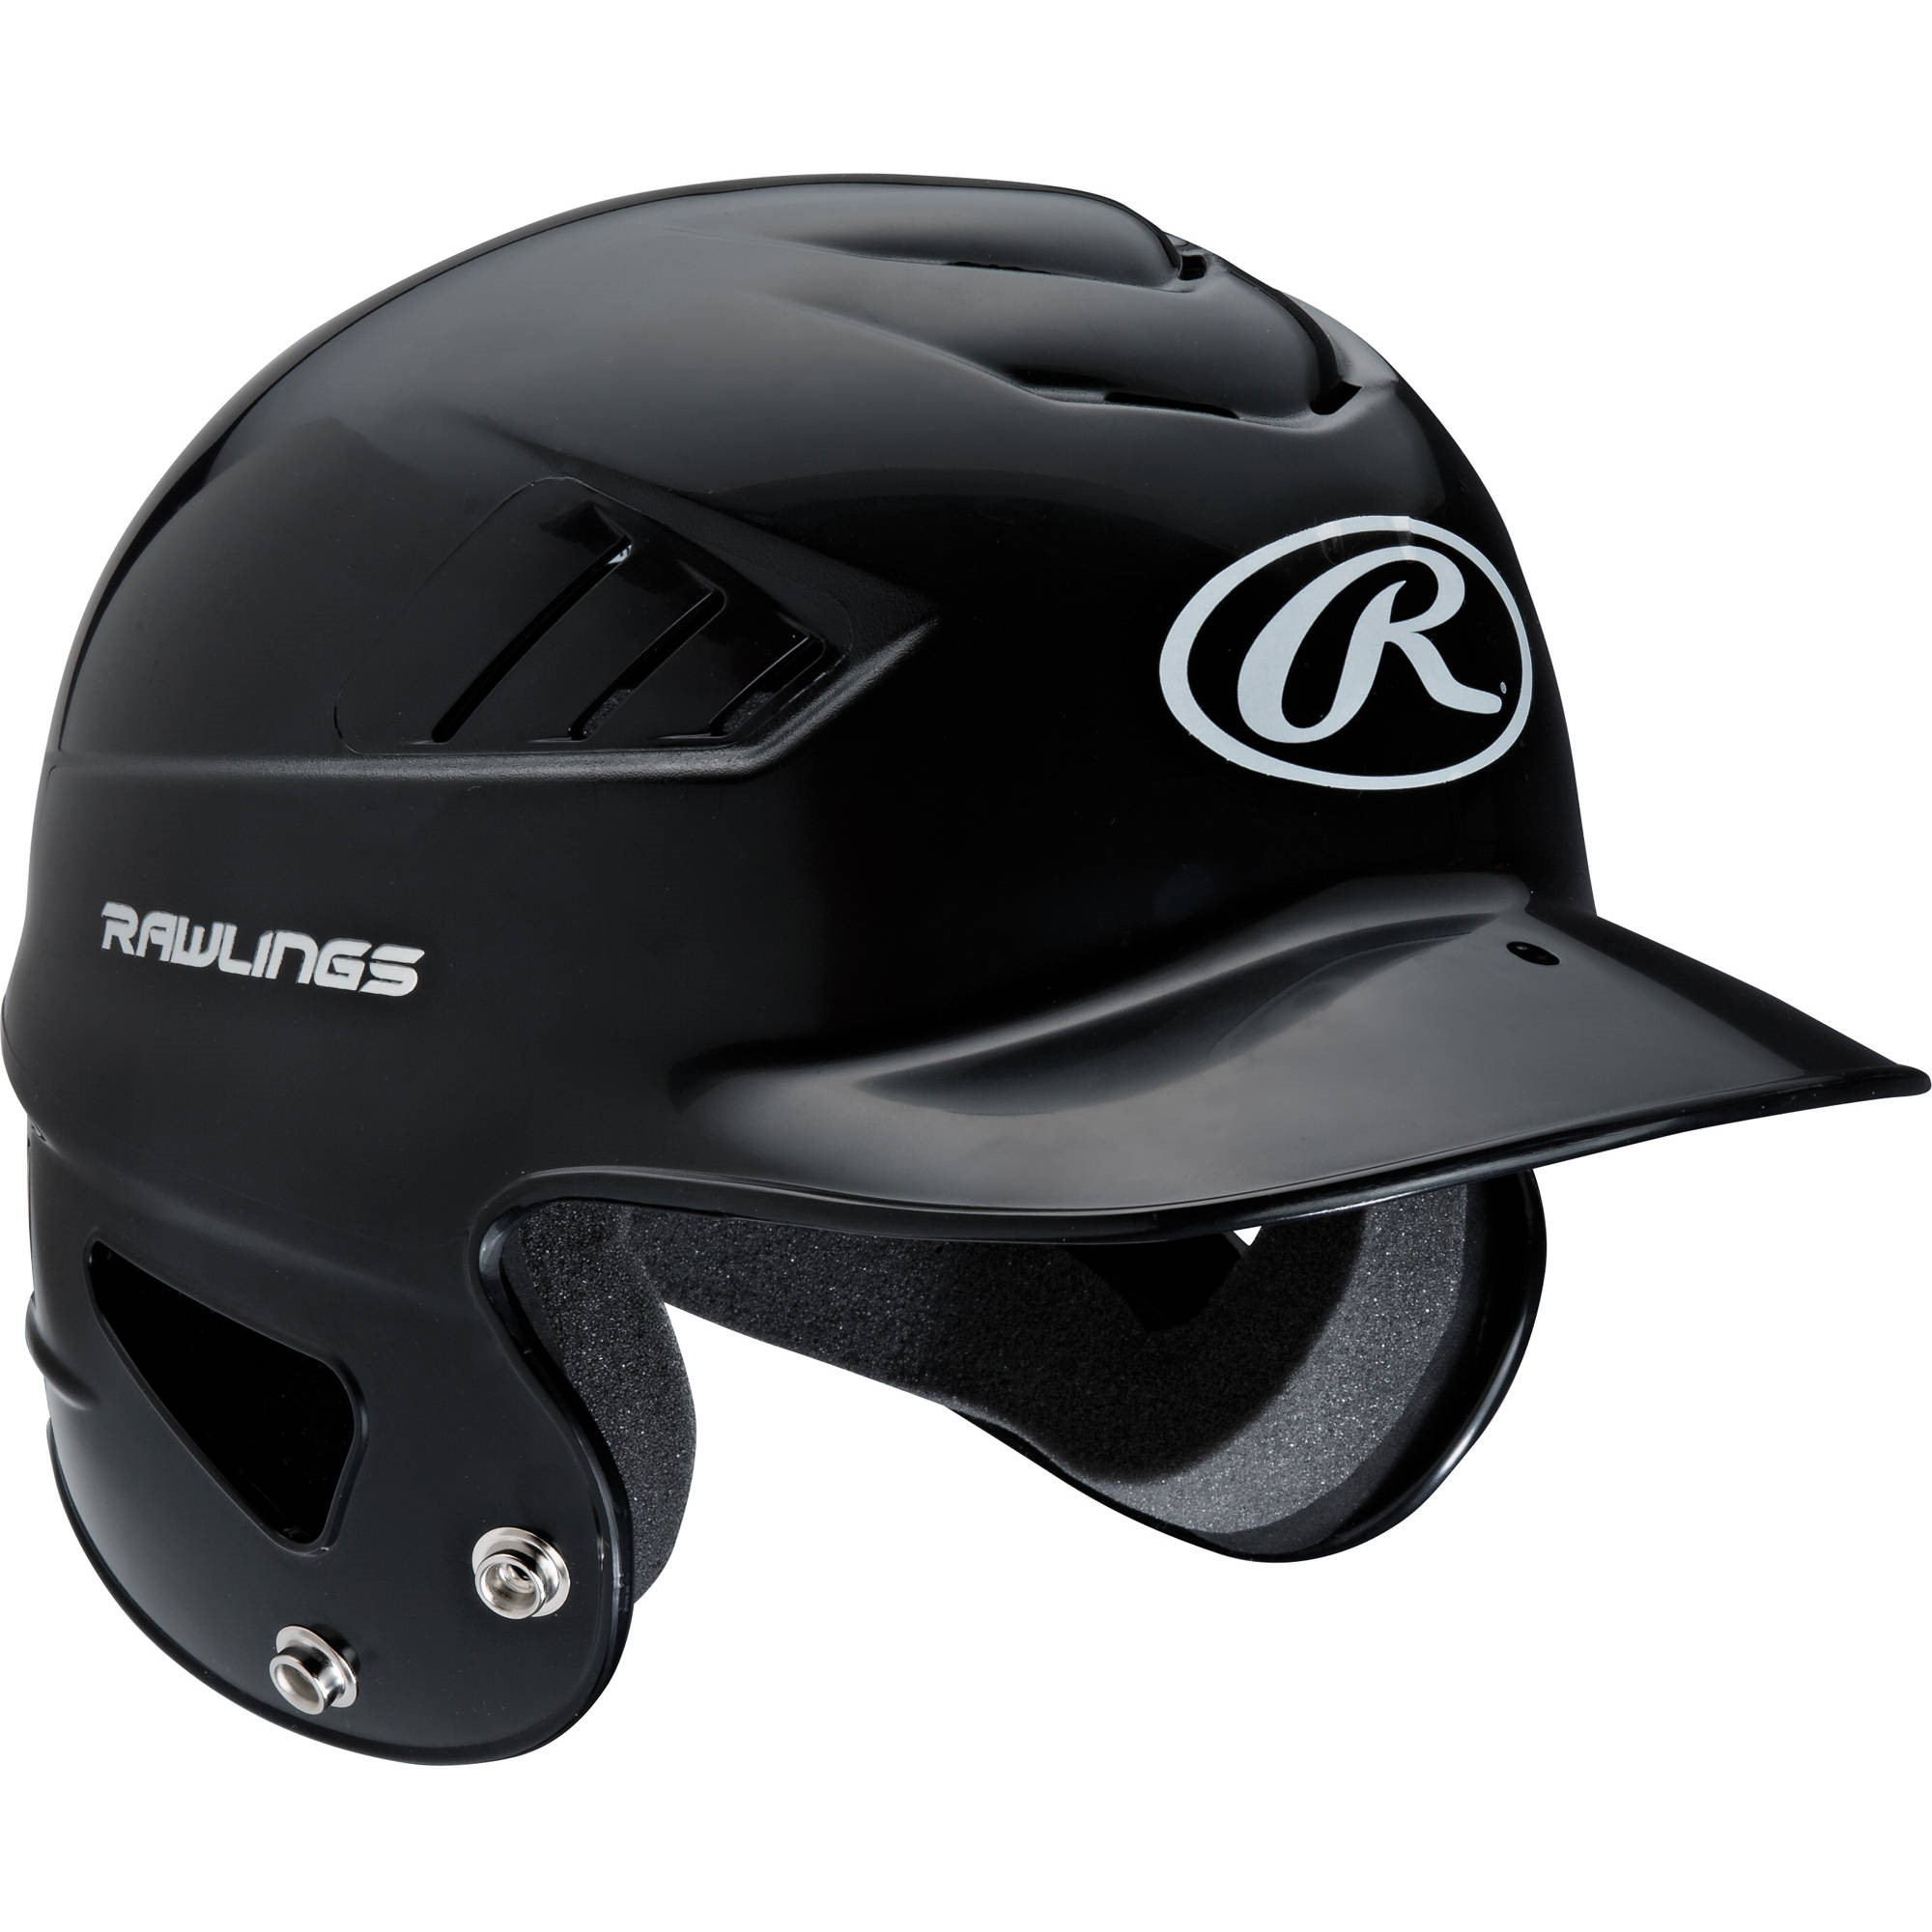 Rawlings Coolflo Molded Baseball Batting Helmet, Black